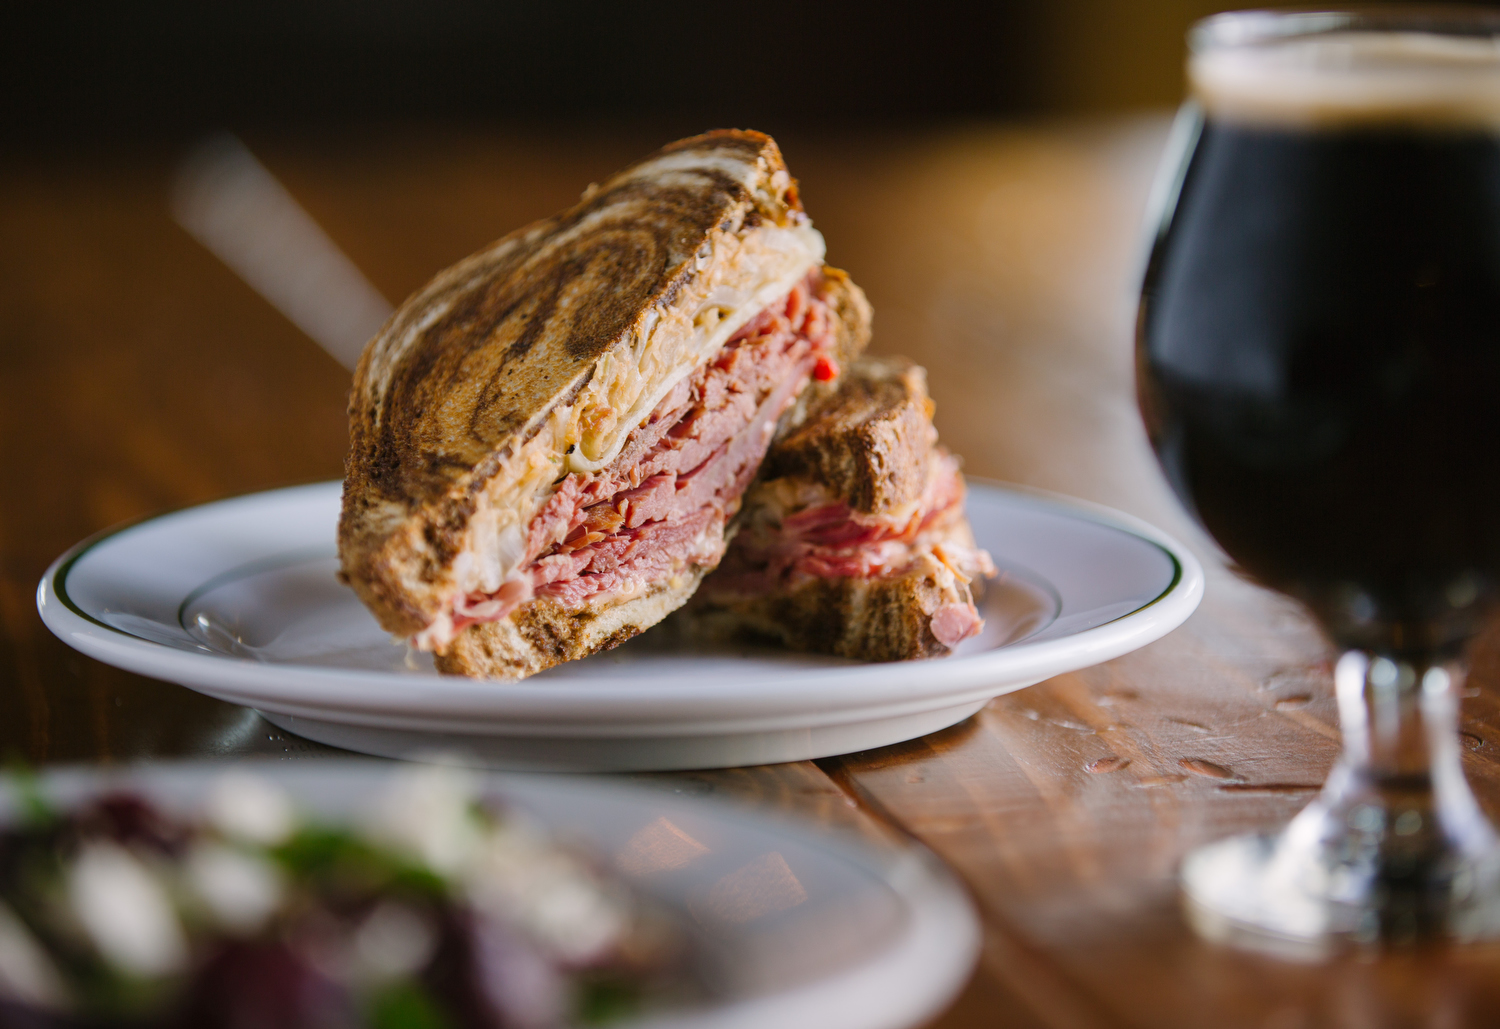 Food photographed for Public House Brewing Company on July 14, 2015 in St. James, Mo. Photos by Brad Zweerink